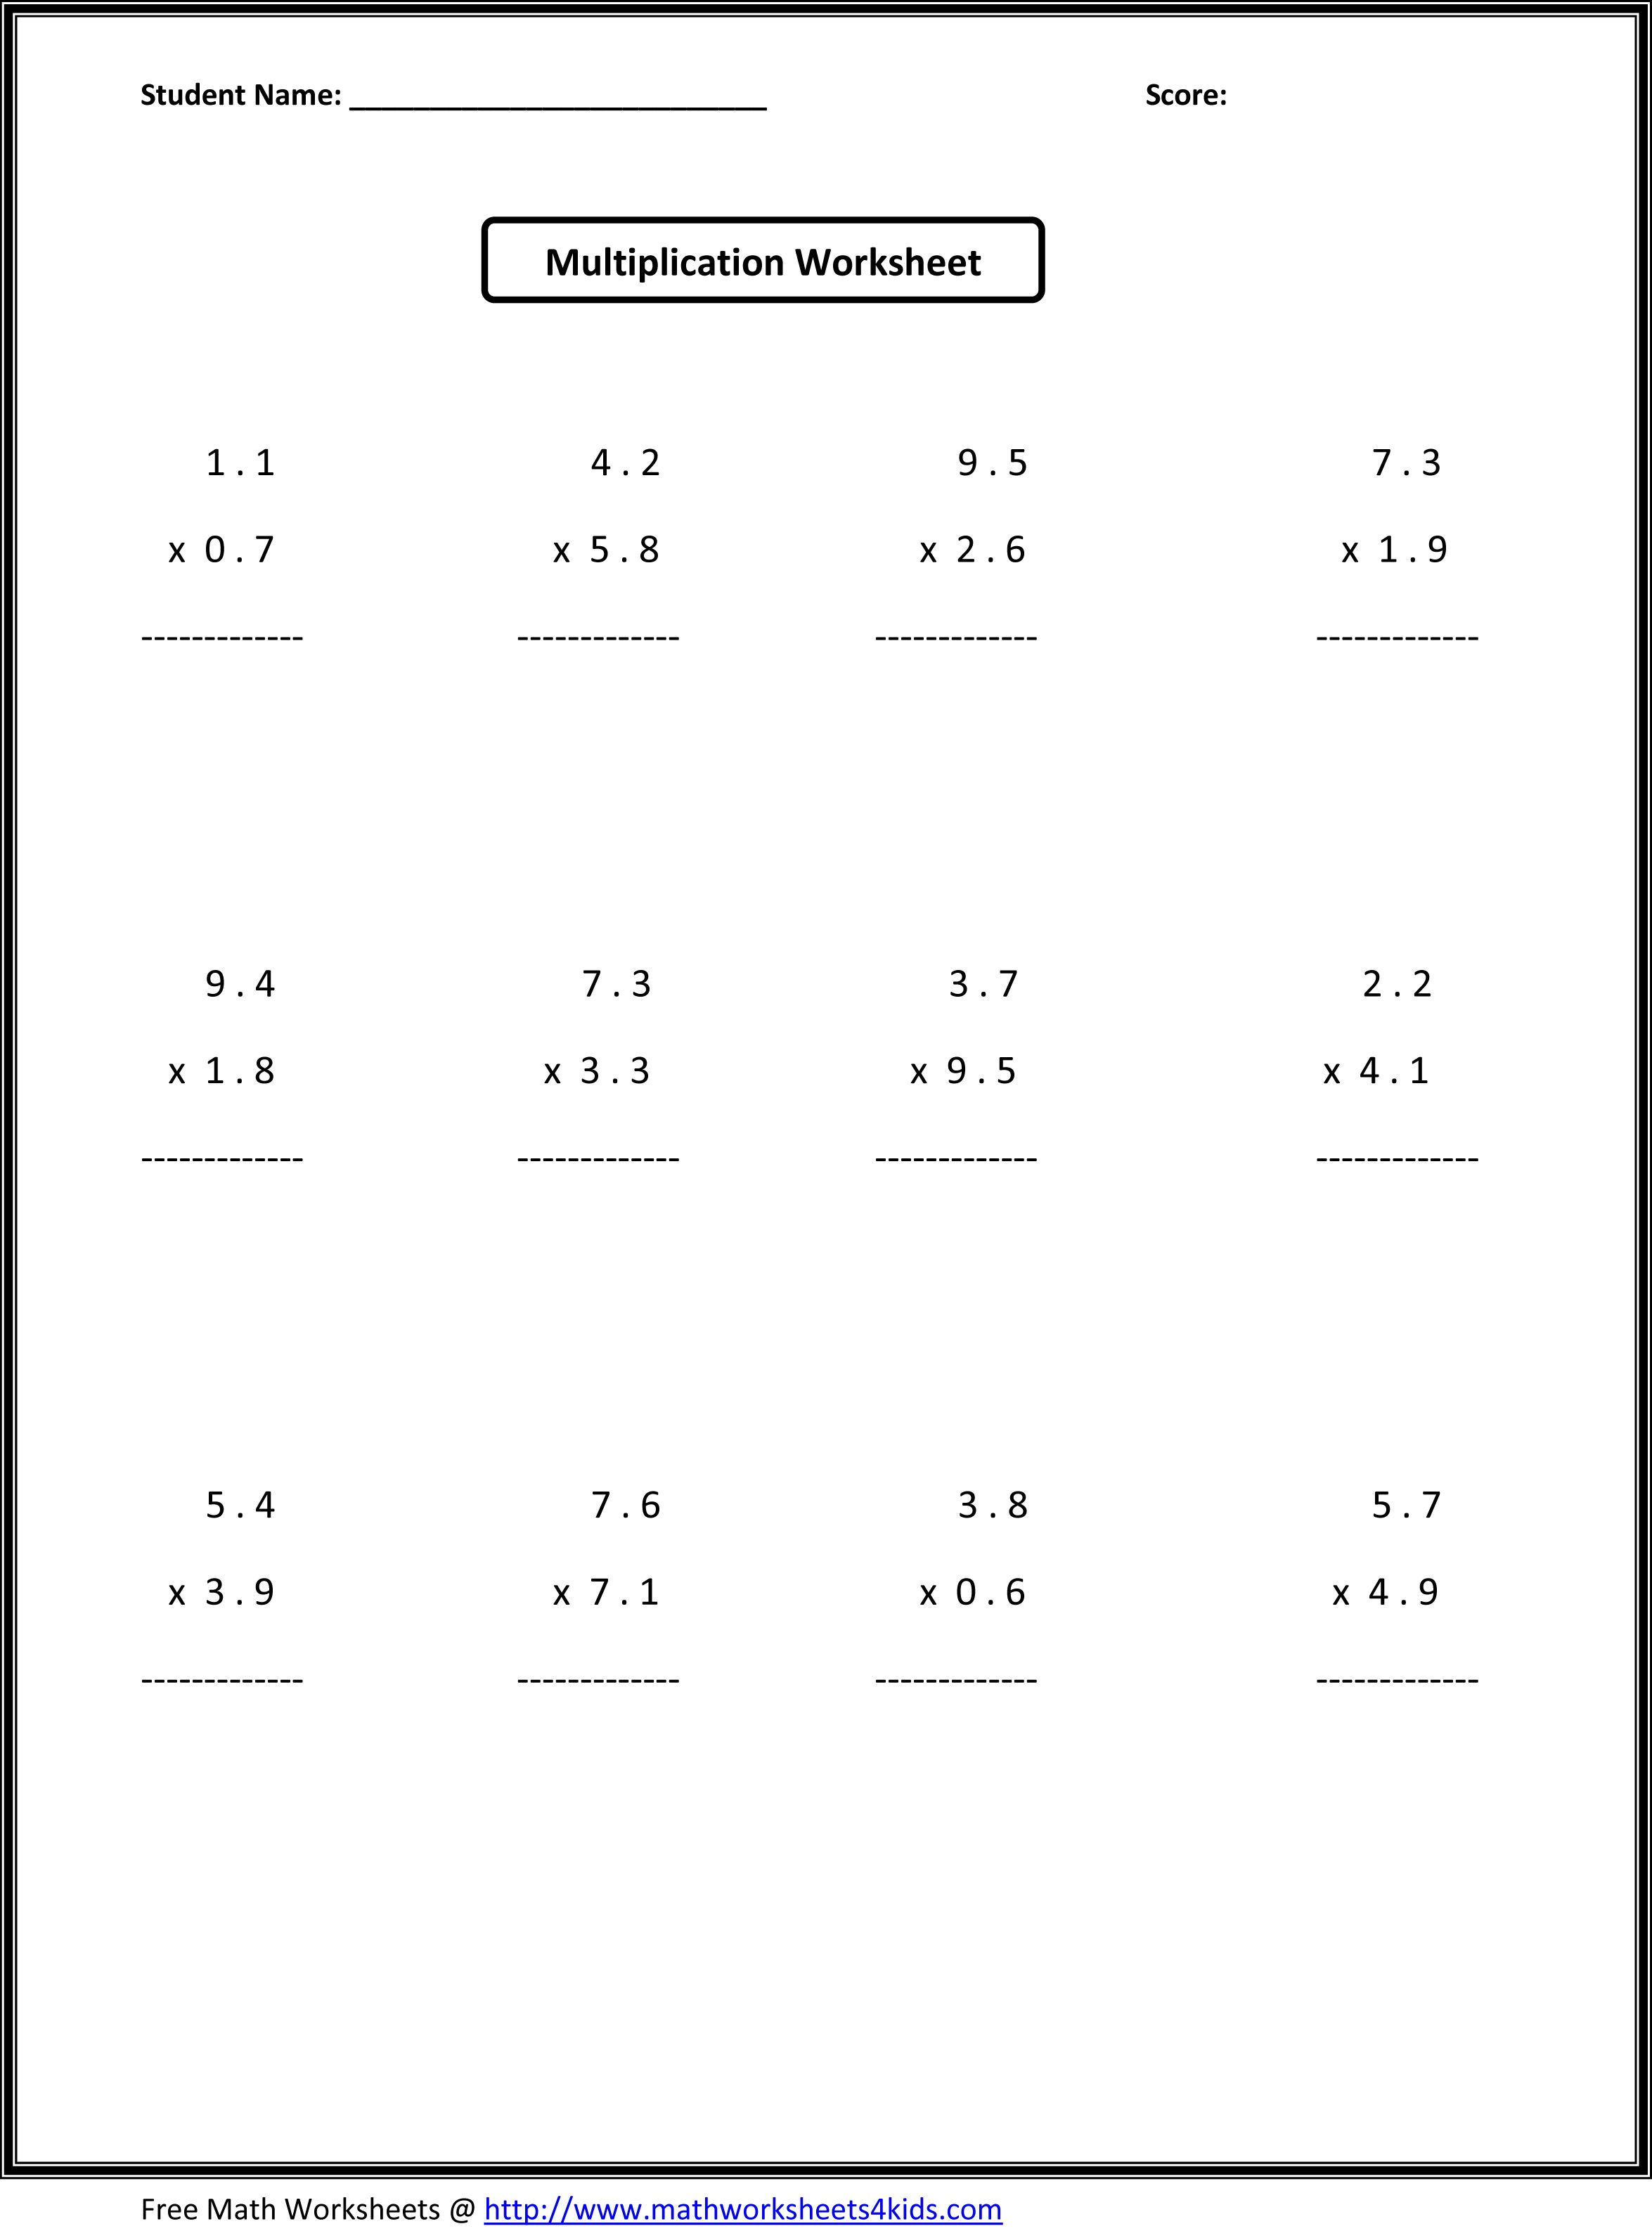 Uncategorized How To Make A Math Worksheet math worksheets for grade 8 7th standard met working with value absolute based on basic math